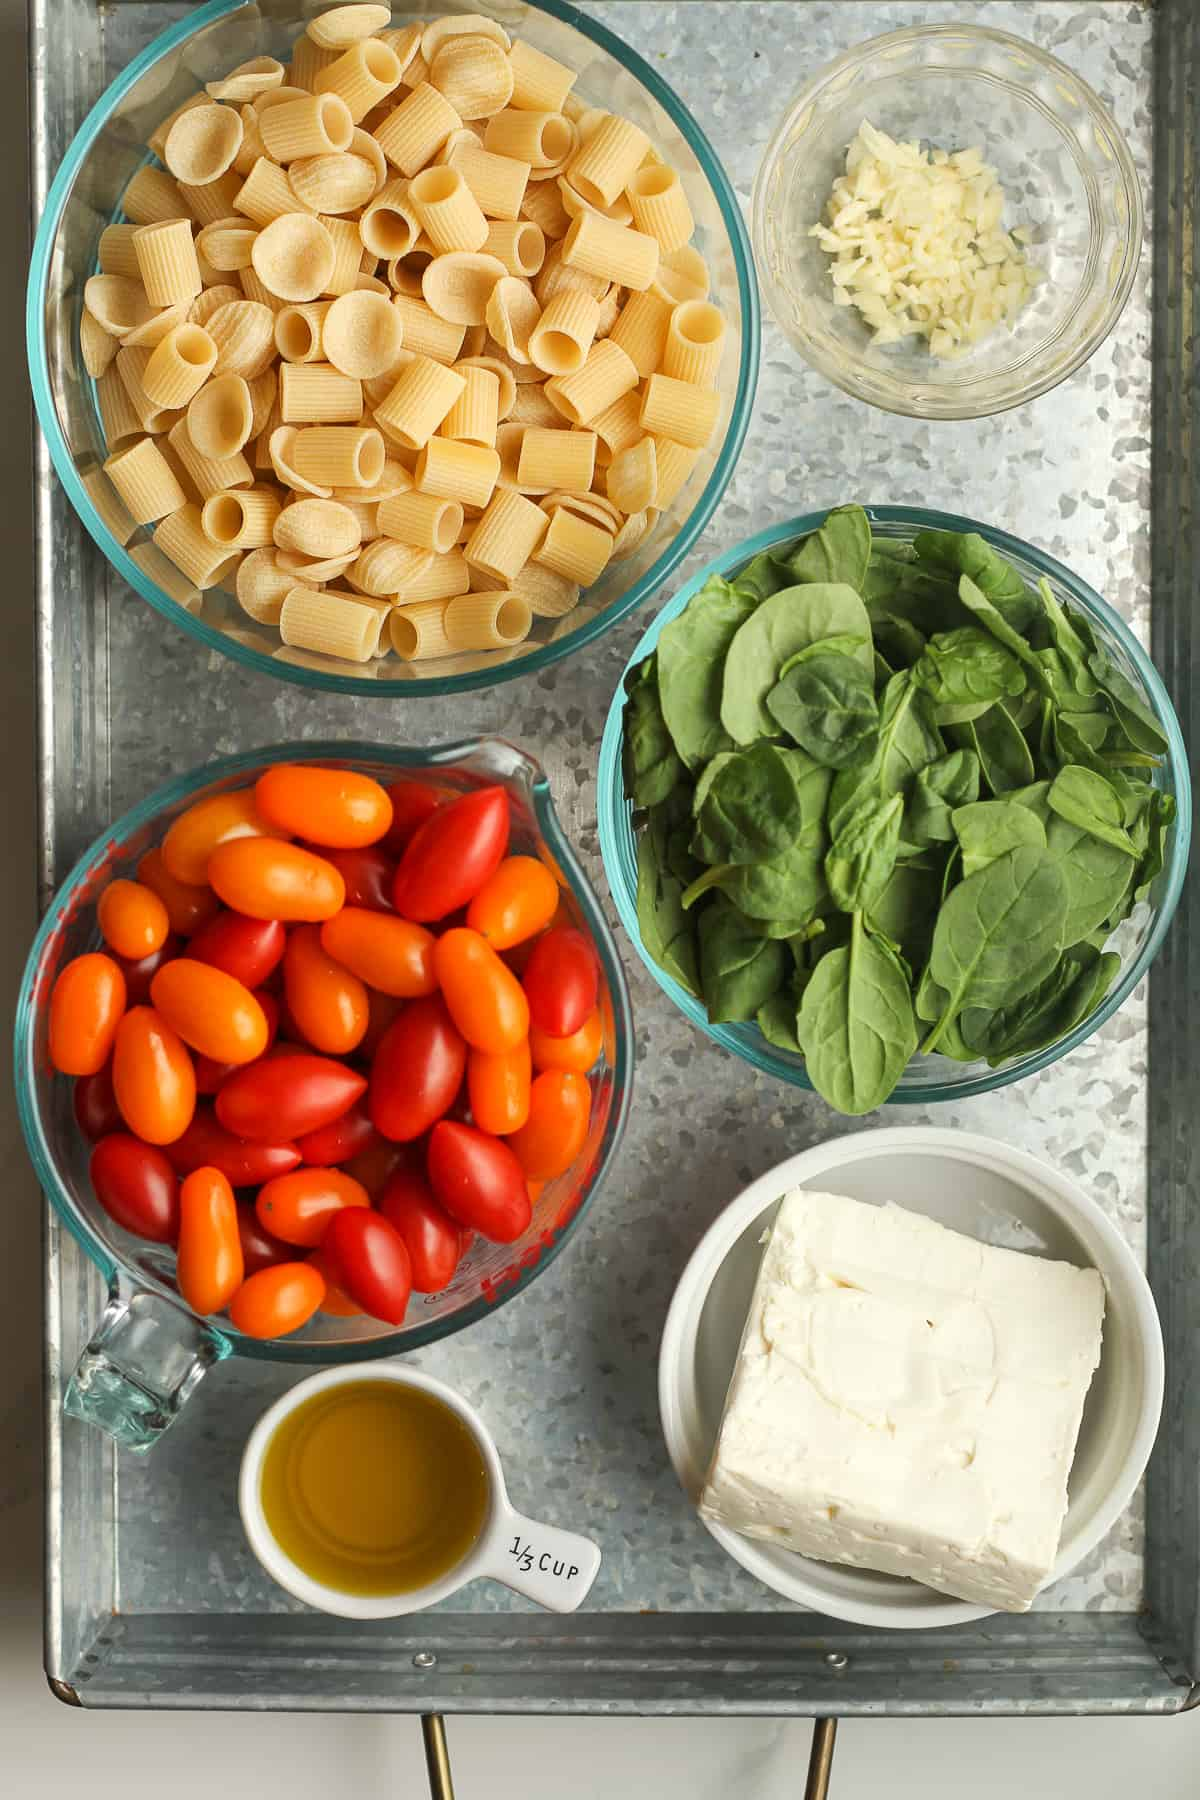 A tray of the pasta ingredients.